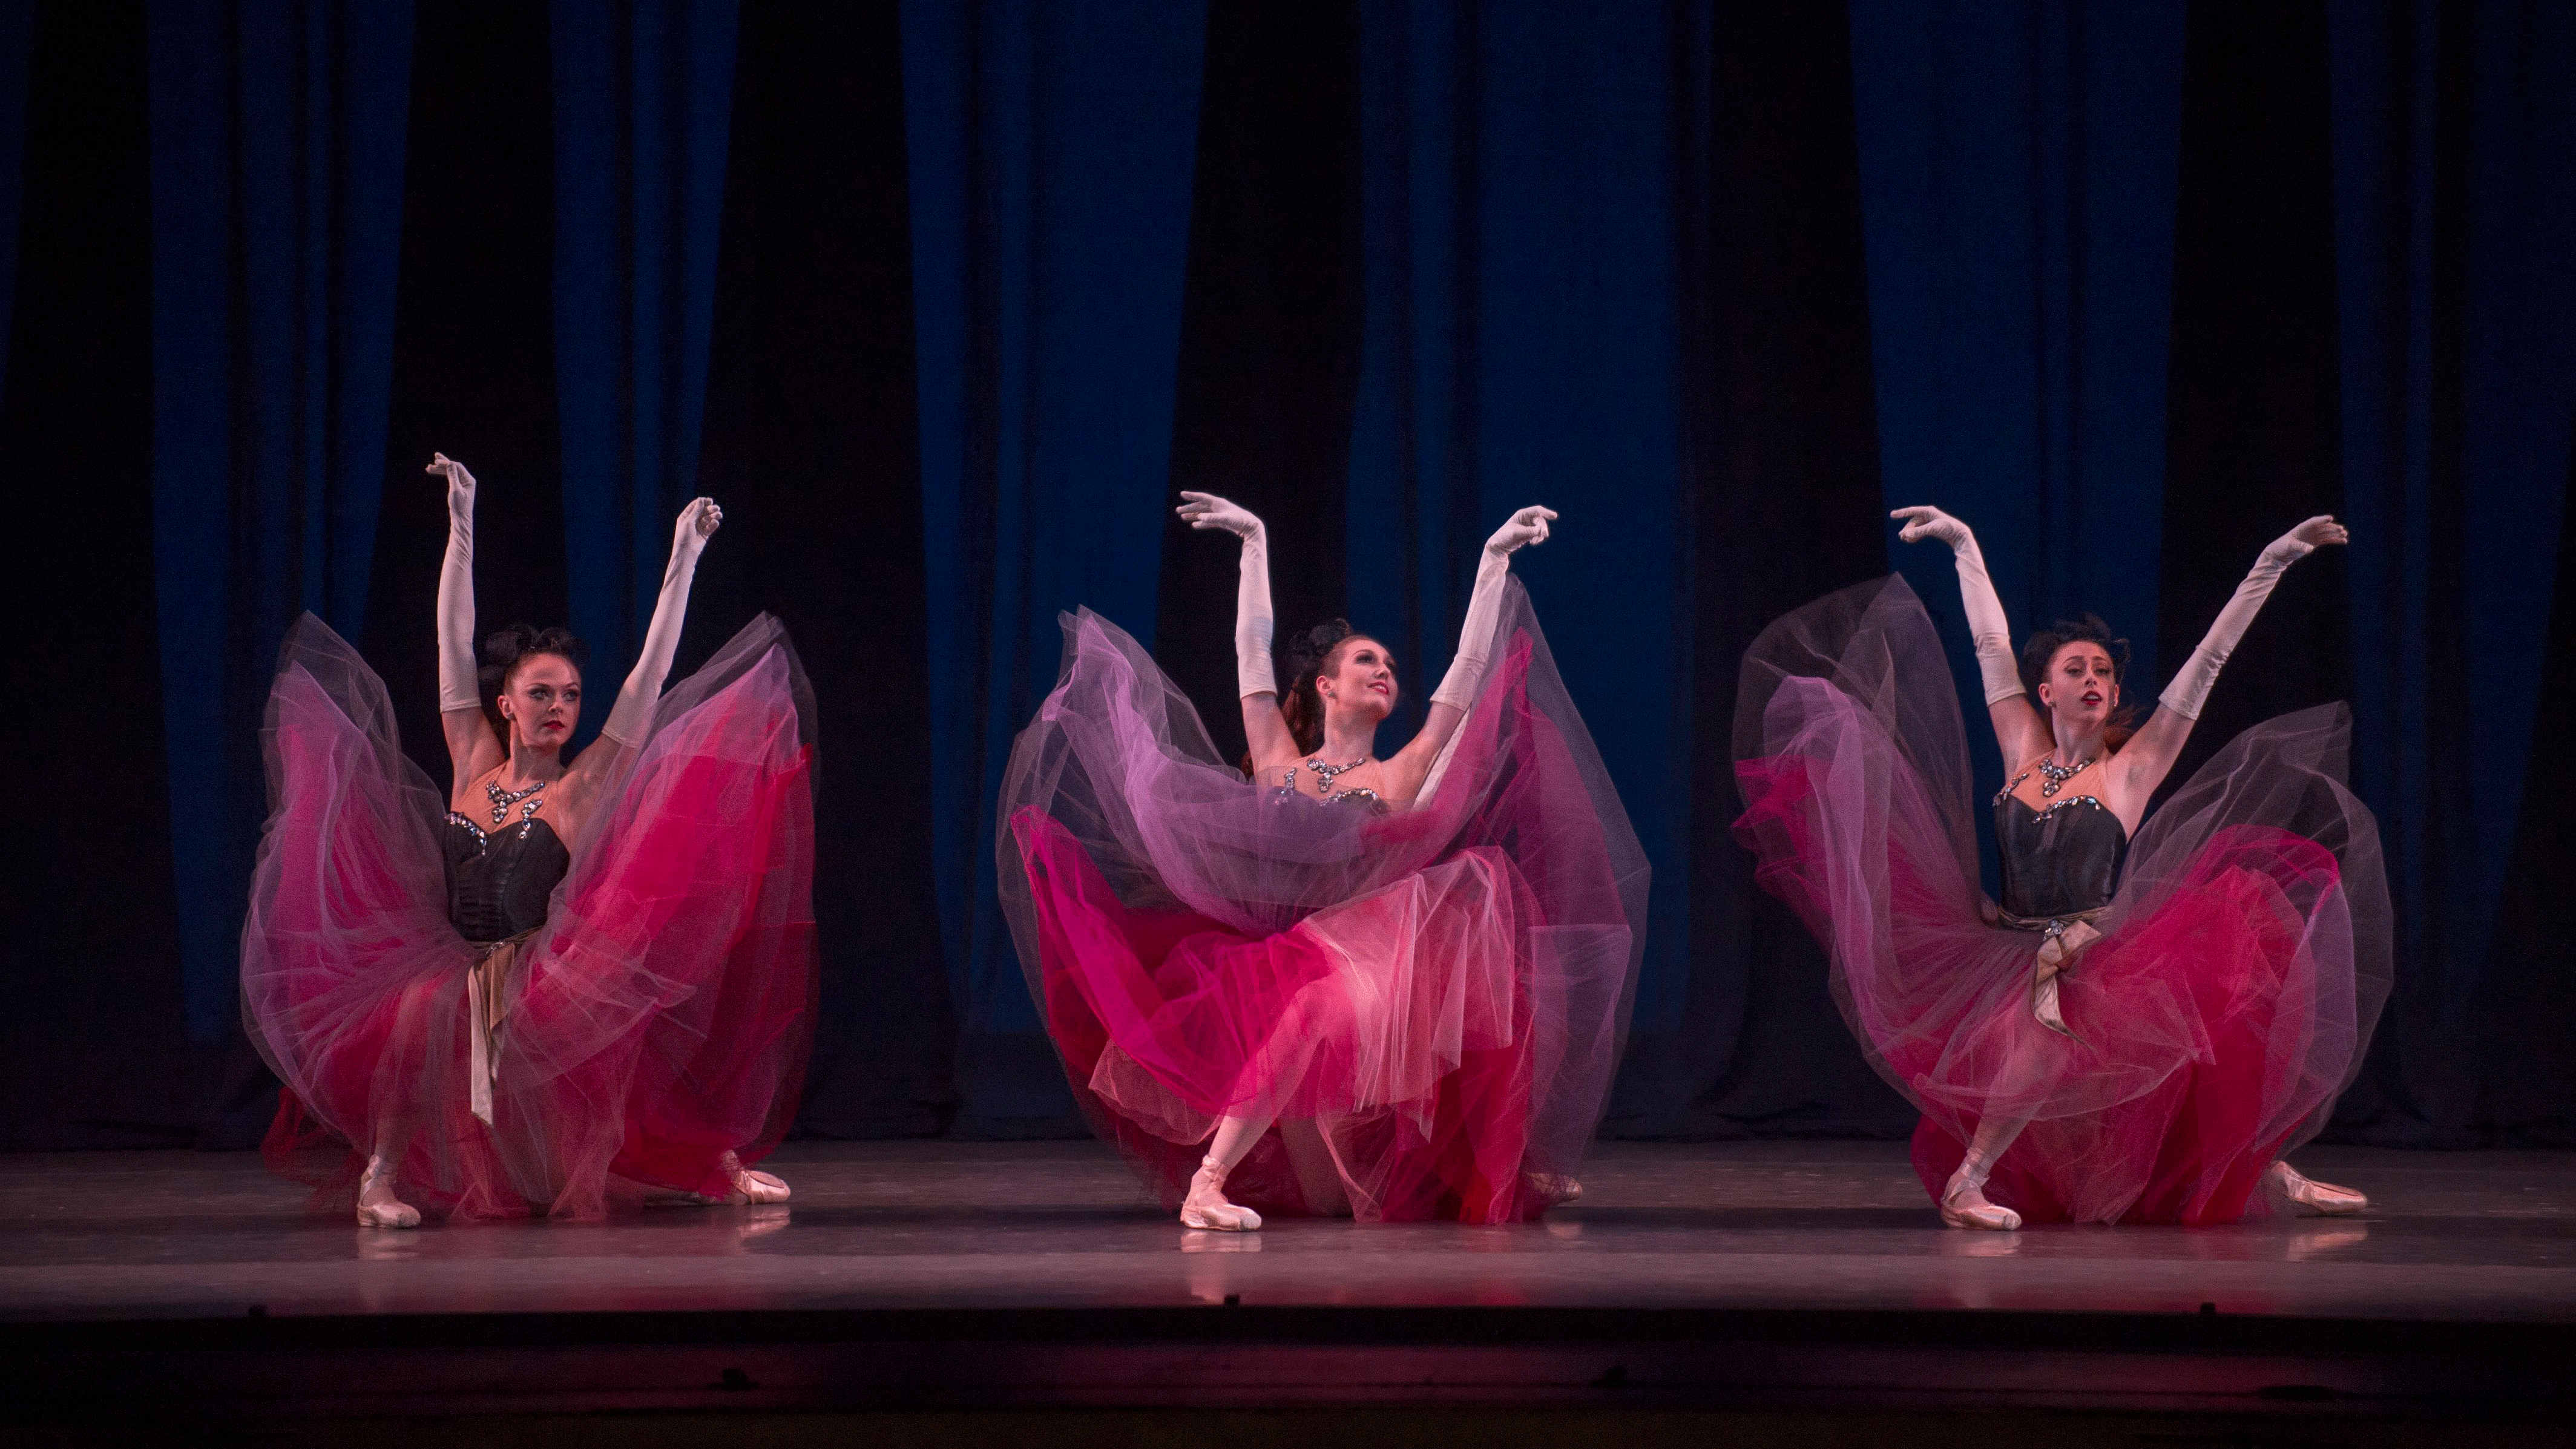 Four masterpieces by George Balanchine, music by French composers